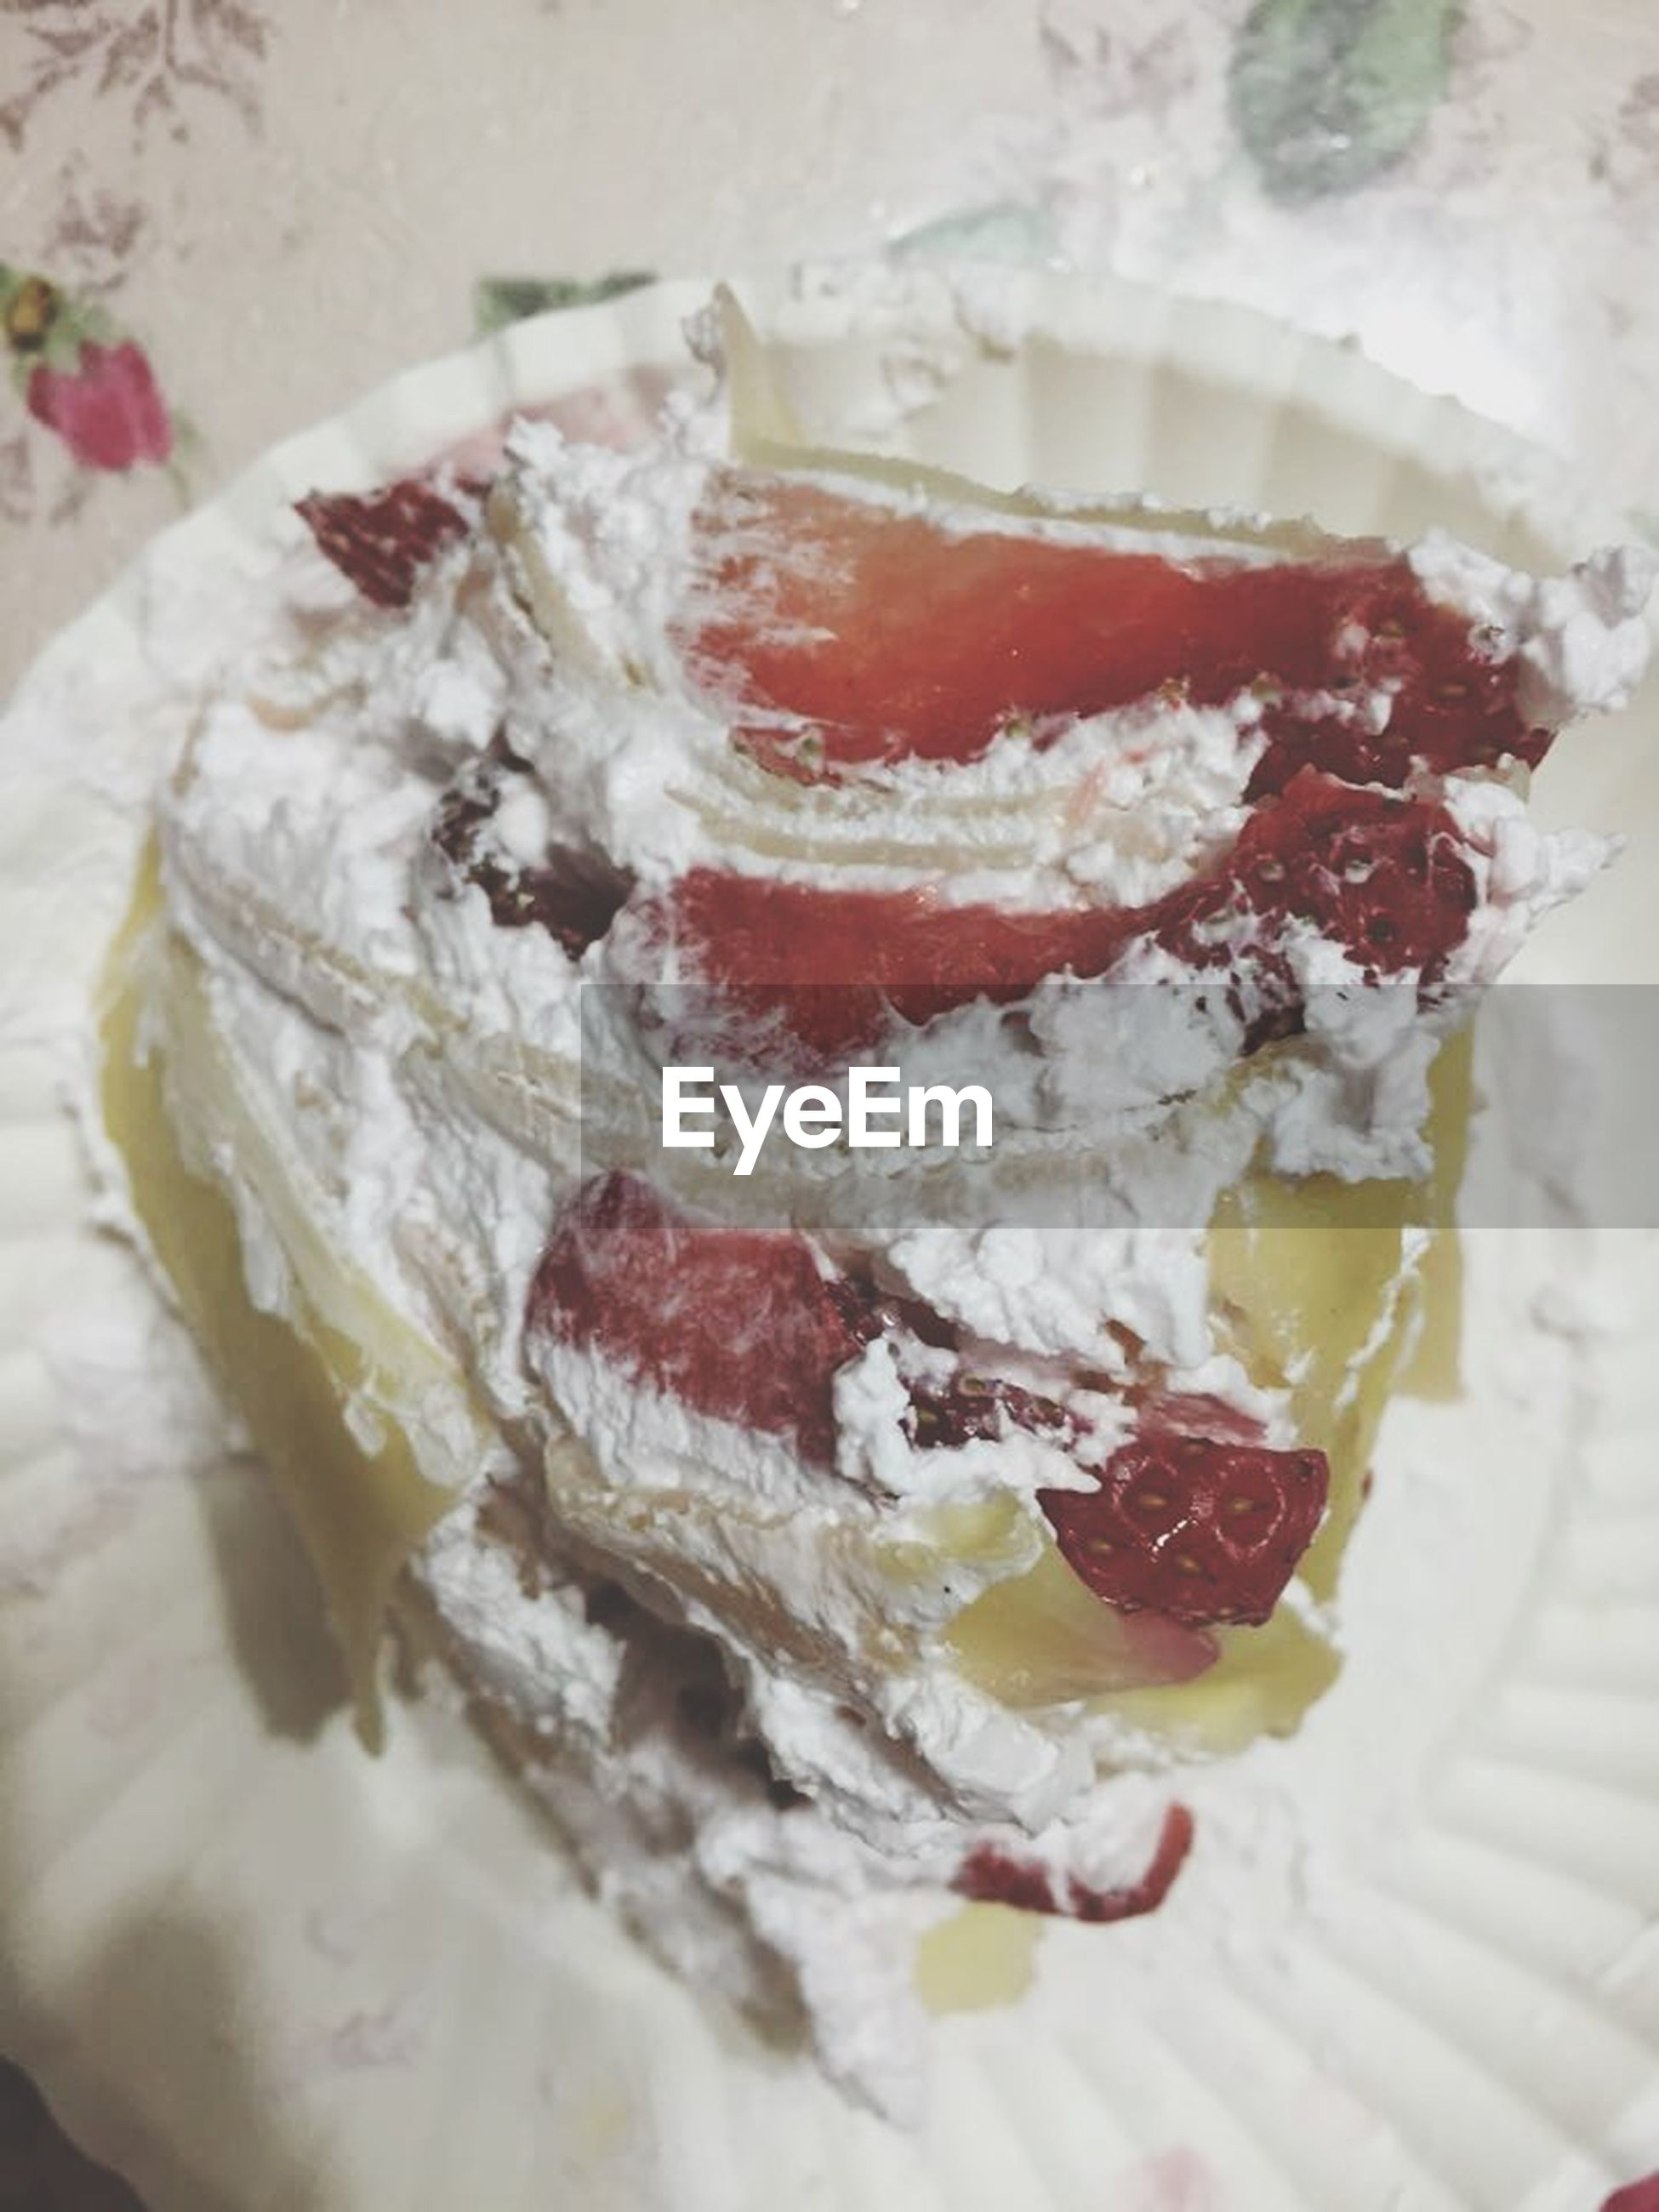 food and drink, food, freshness, indoors, ready-to-eat, sweet food, dessert, indulgence, still life, close-up, unhealthy eating, plate, temptation, cake, slice, table, serving size, fruit, strawberry, ice cream